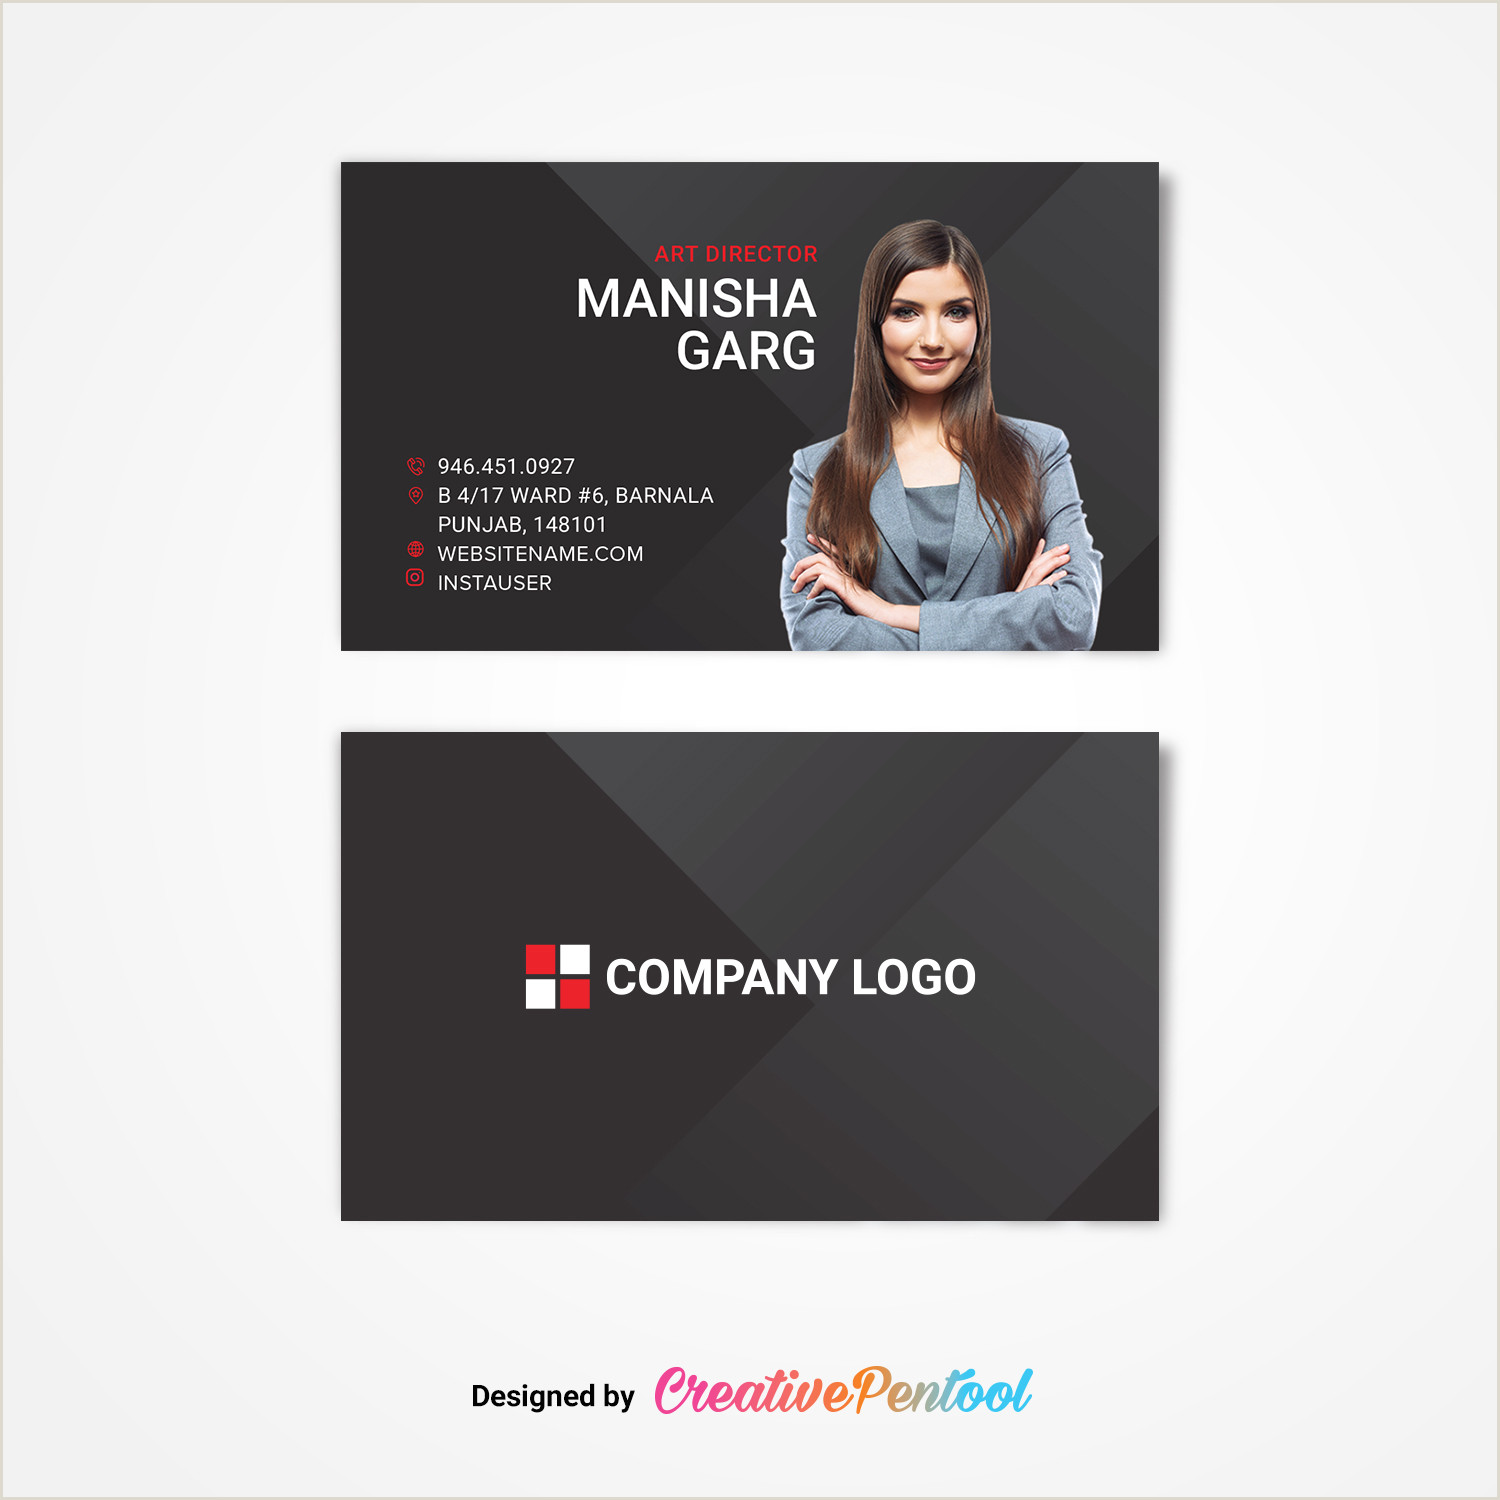 Unique Business Cards Headshot Business Card With Headshot Creativepentool